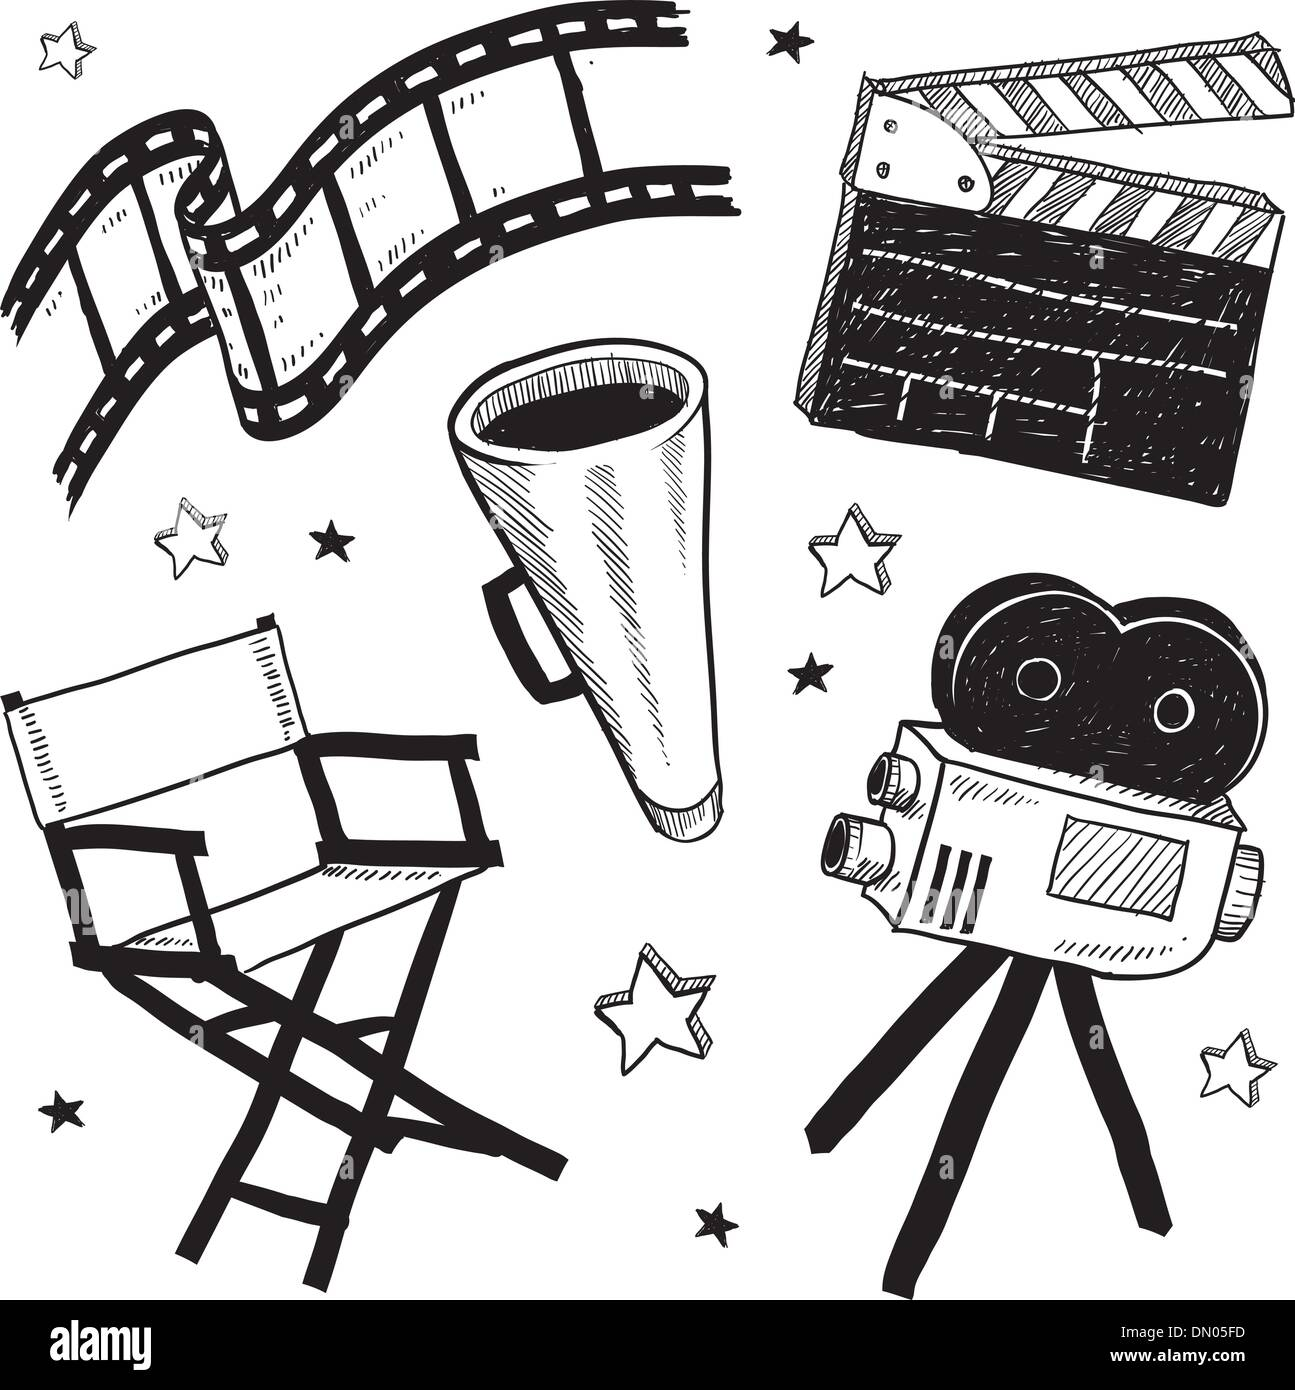 Movie set objects sketch Stock Vector Art & Illustration